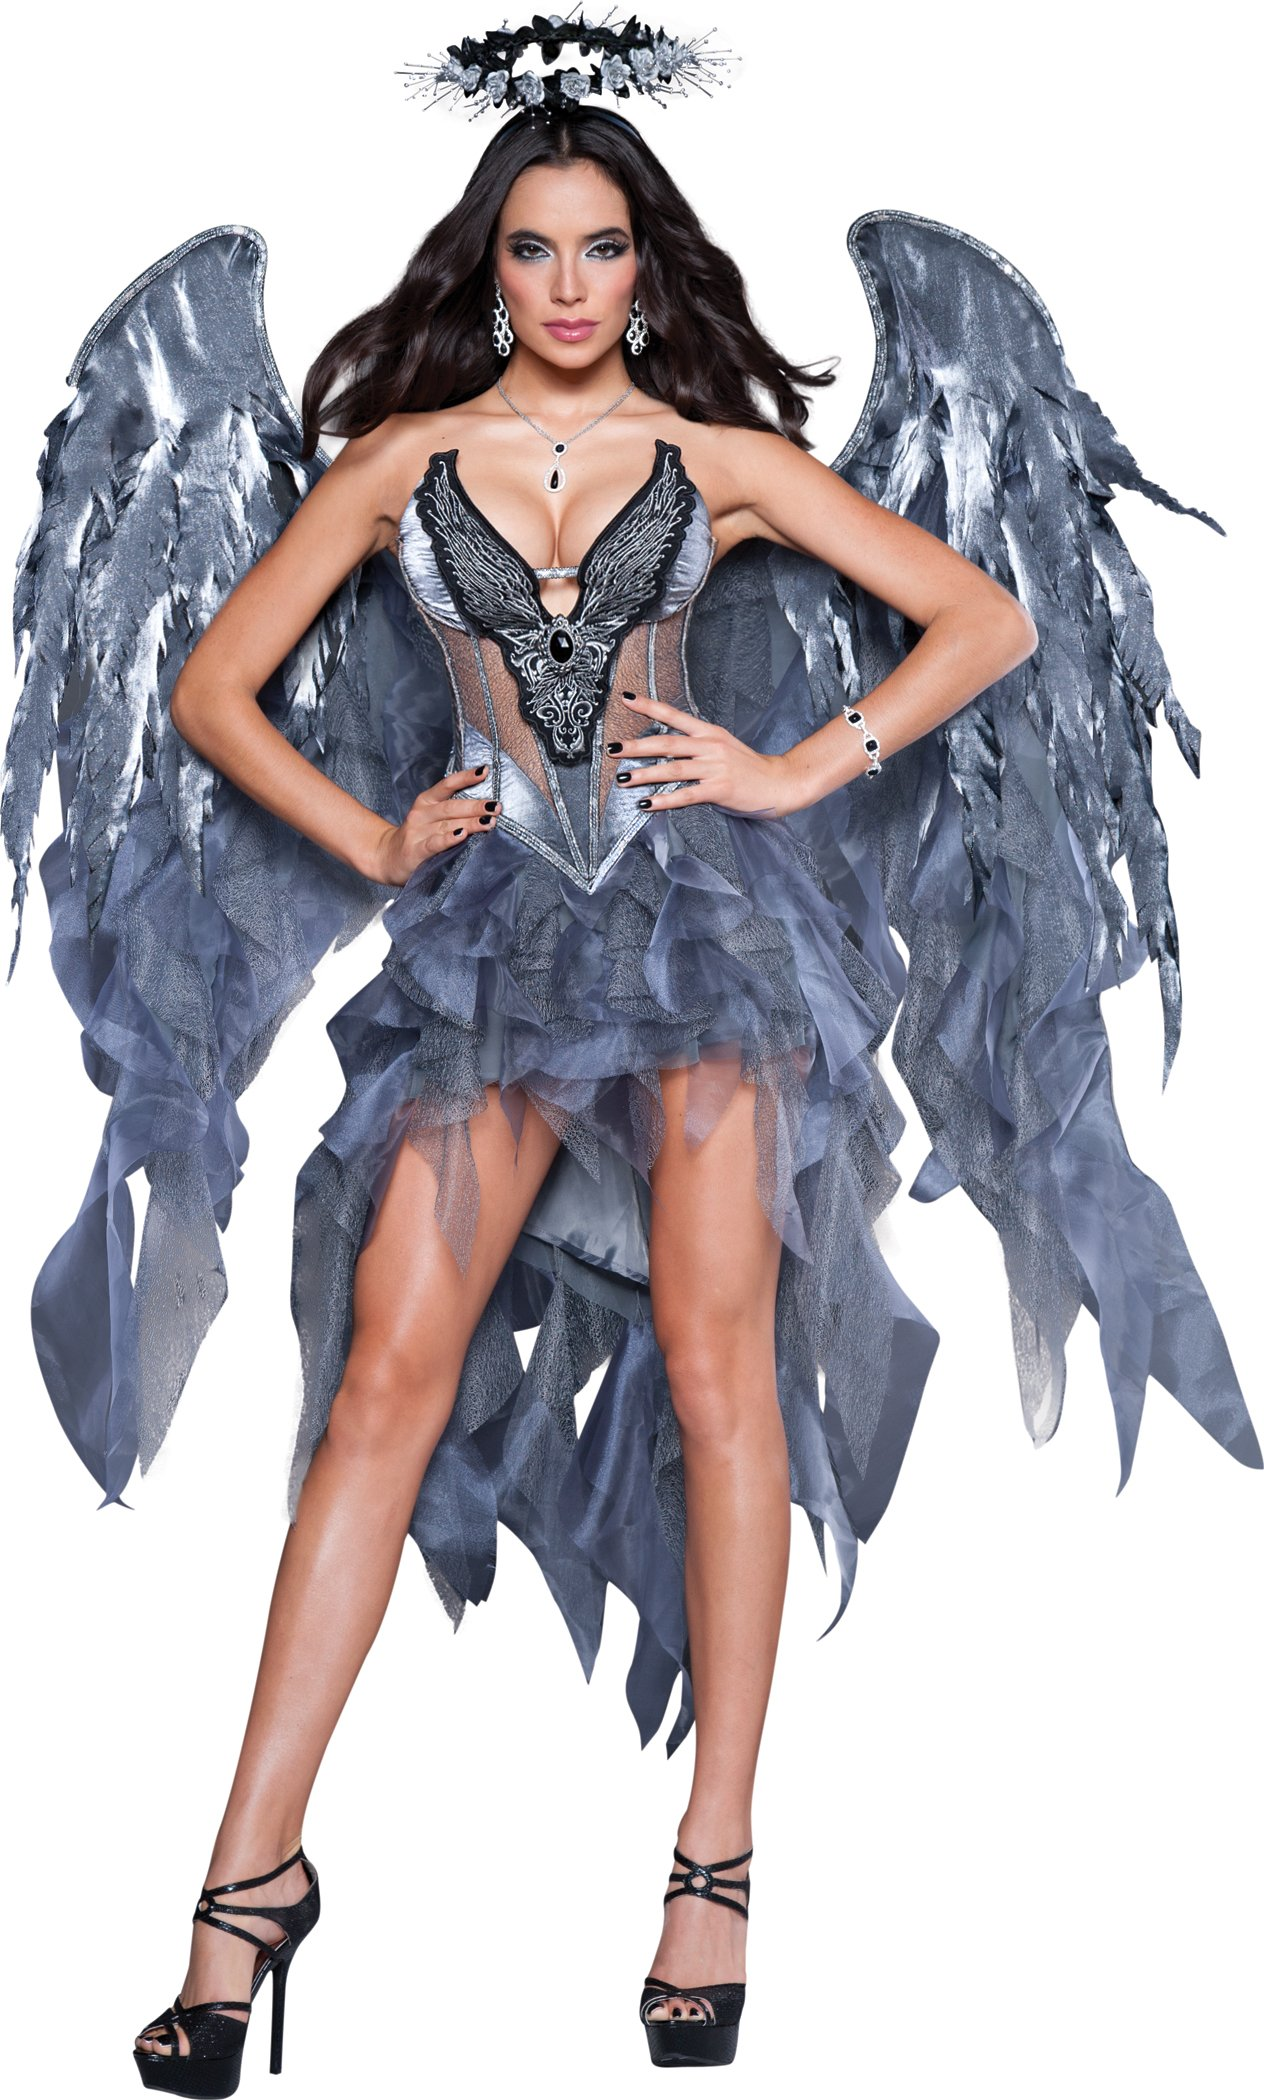 InCharacter Costumes Women's Dark Angel's Desire Costume, Grey/Silver, Medium by Fun World (Image #1)